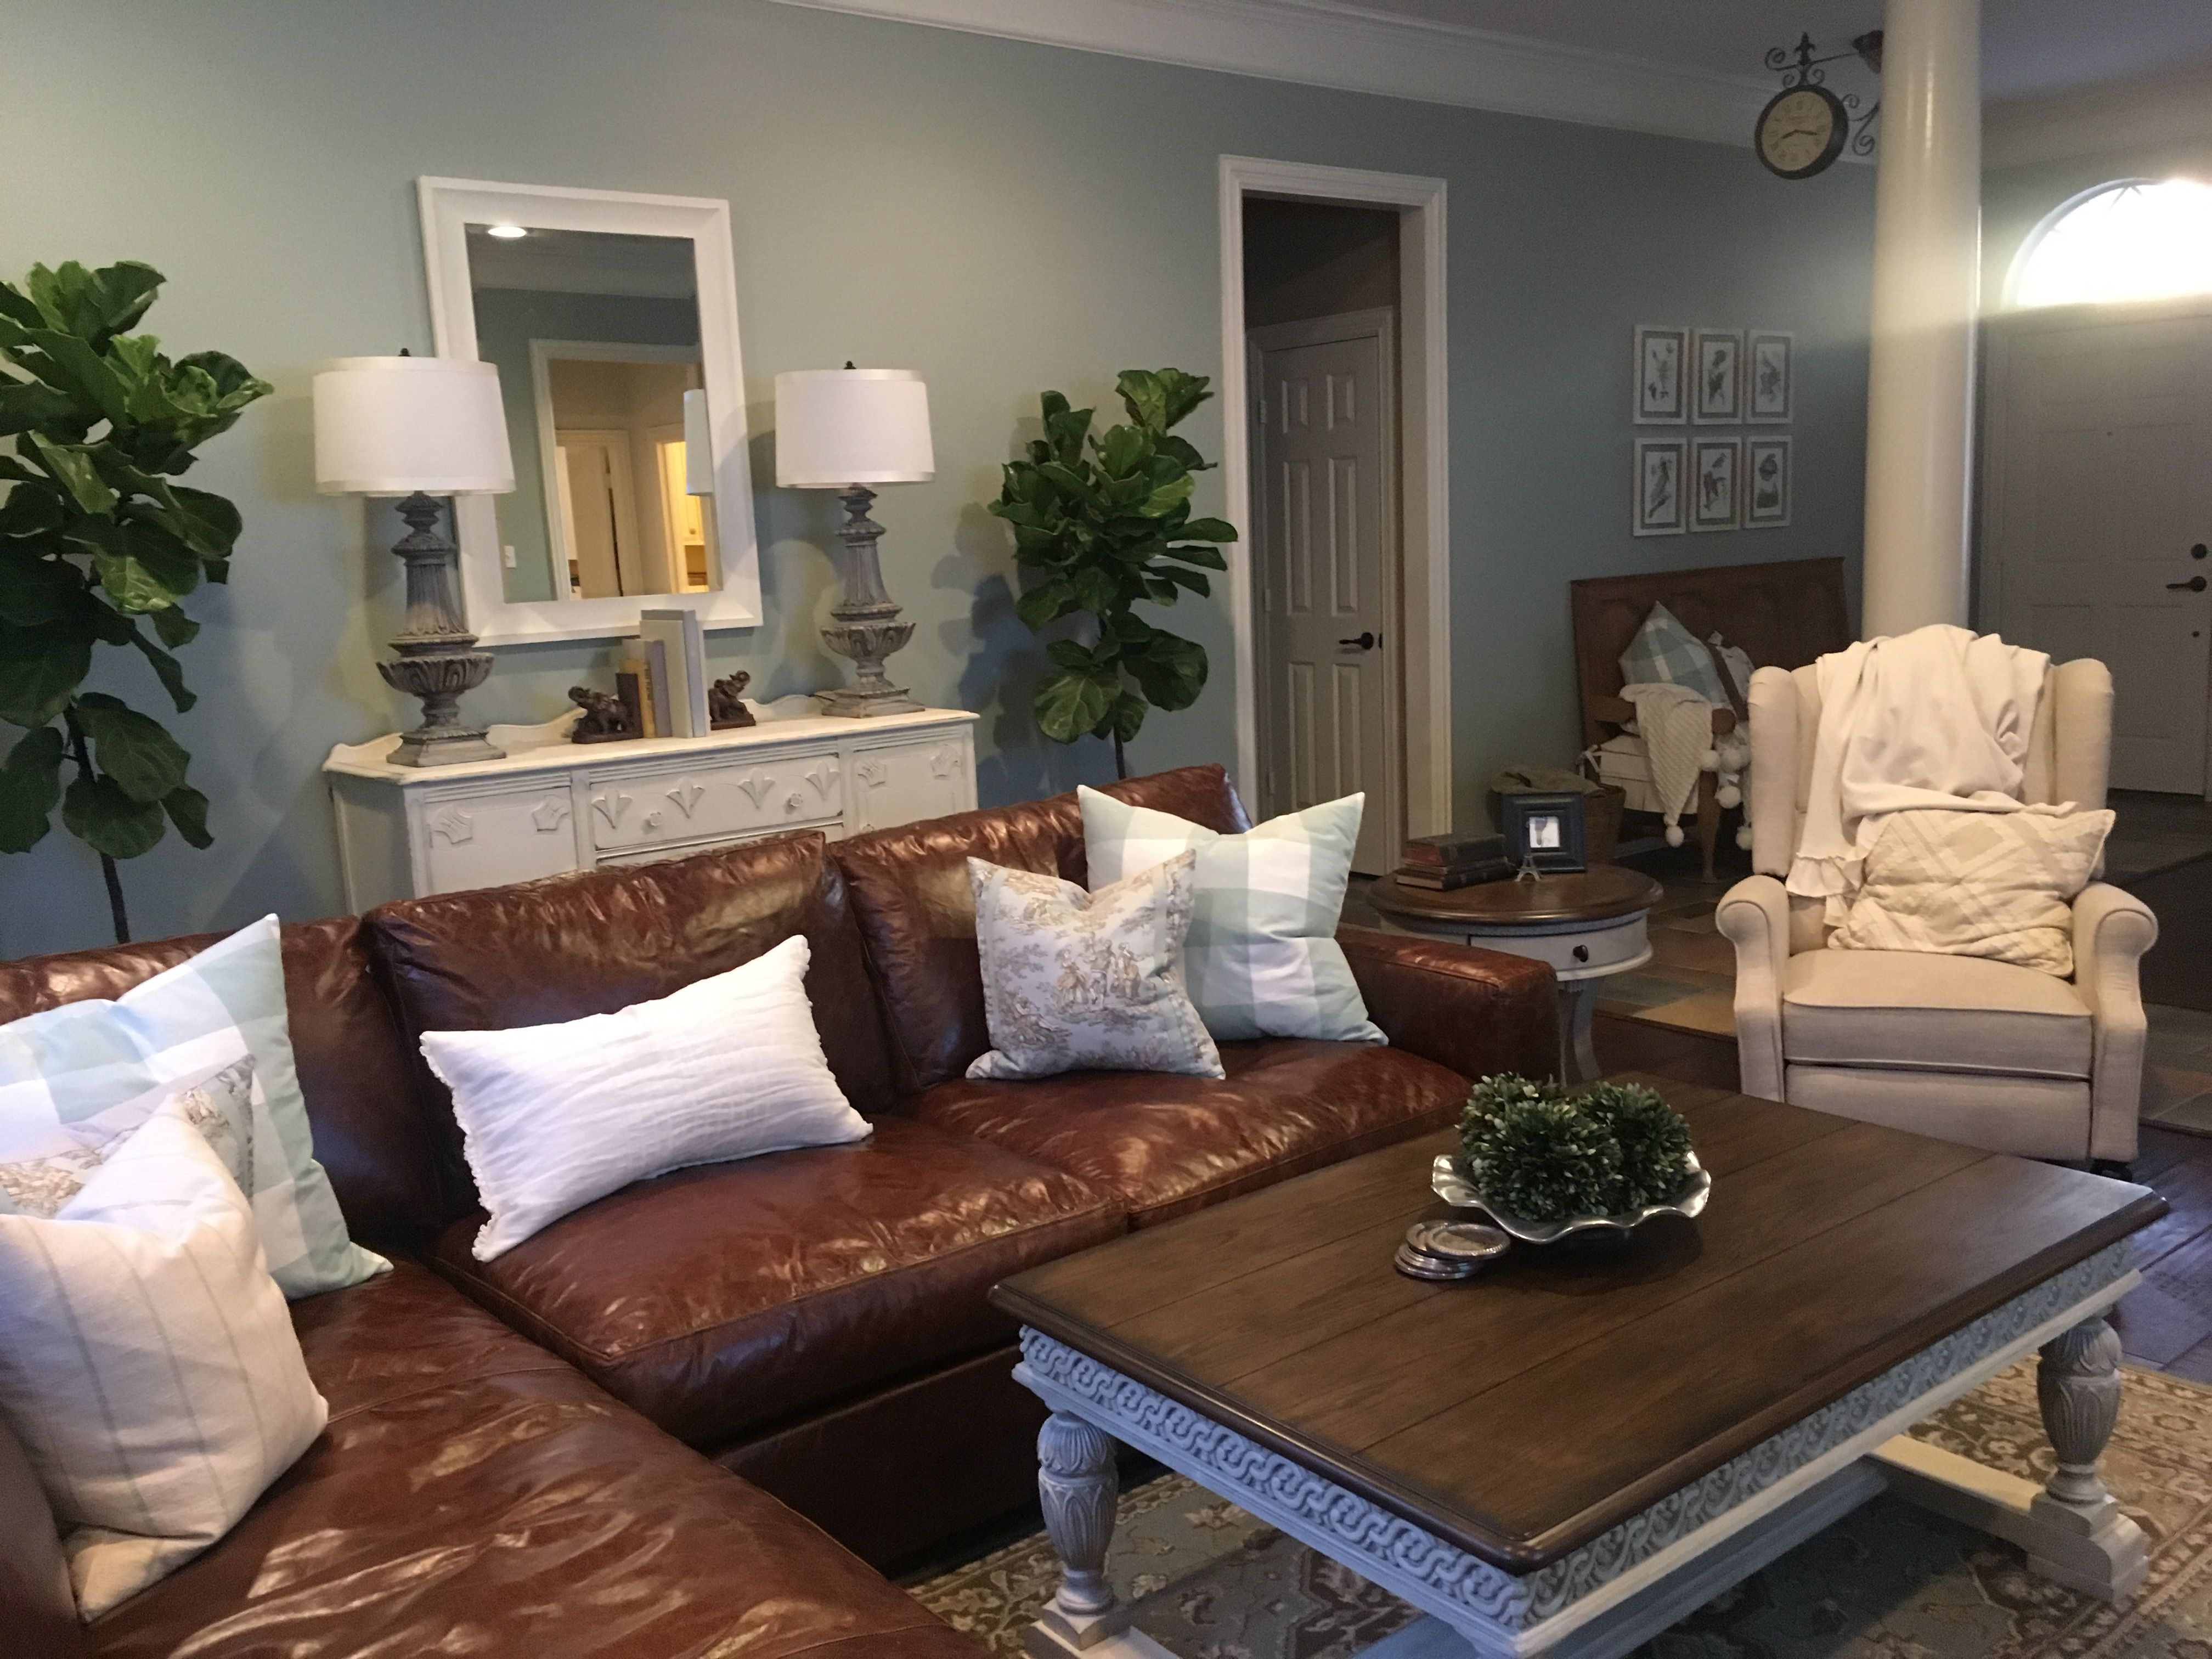 French Country living room after makeover in a Southern Texas Home. Leather couch buffalo check walls Sherwin Williams 75% done by Bluebonnet Home. Vintage Buffet chalk painted cream. After picture.